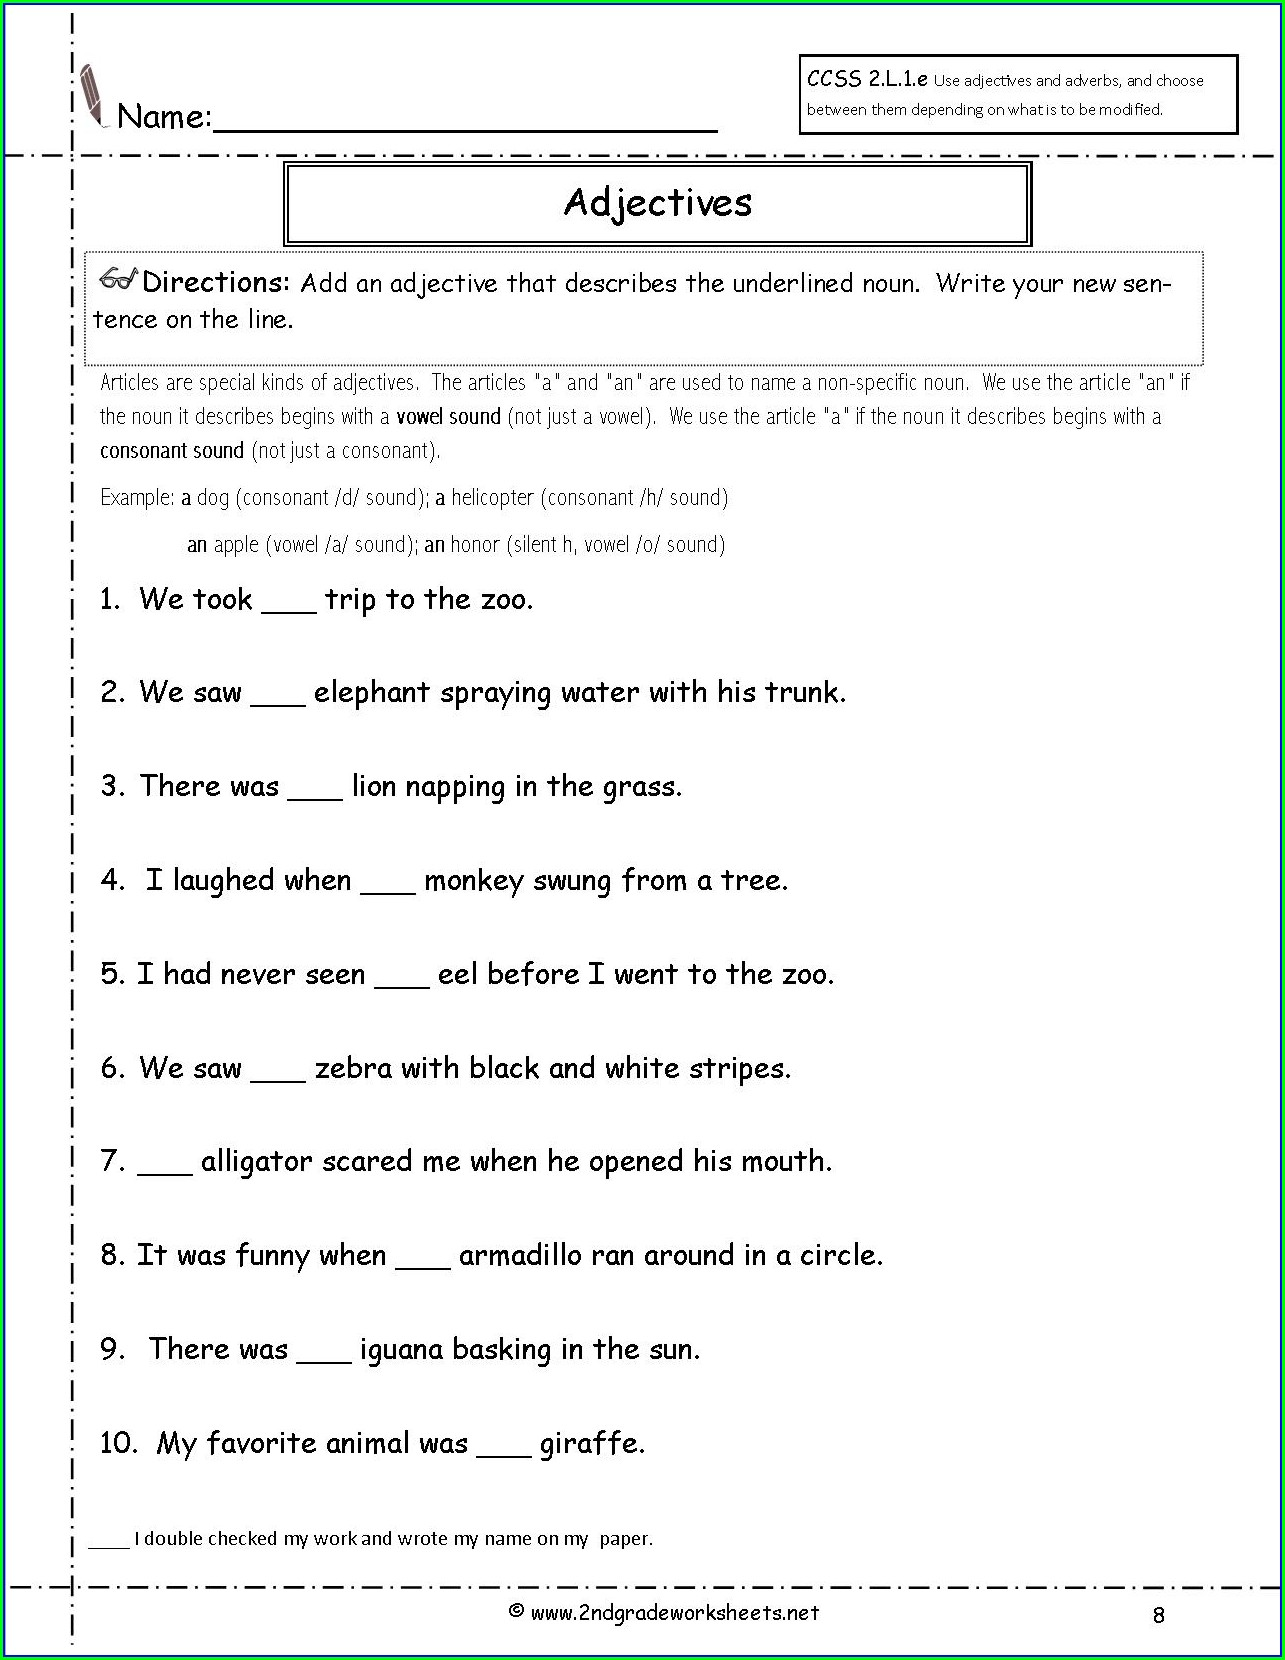 Second Grade Class 2 English Worksheet